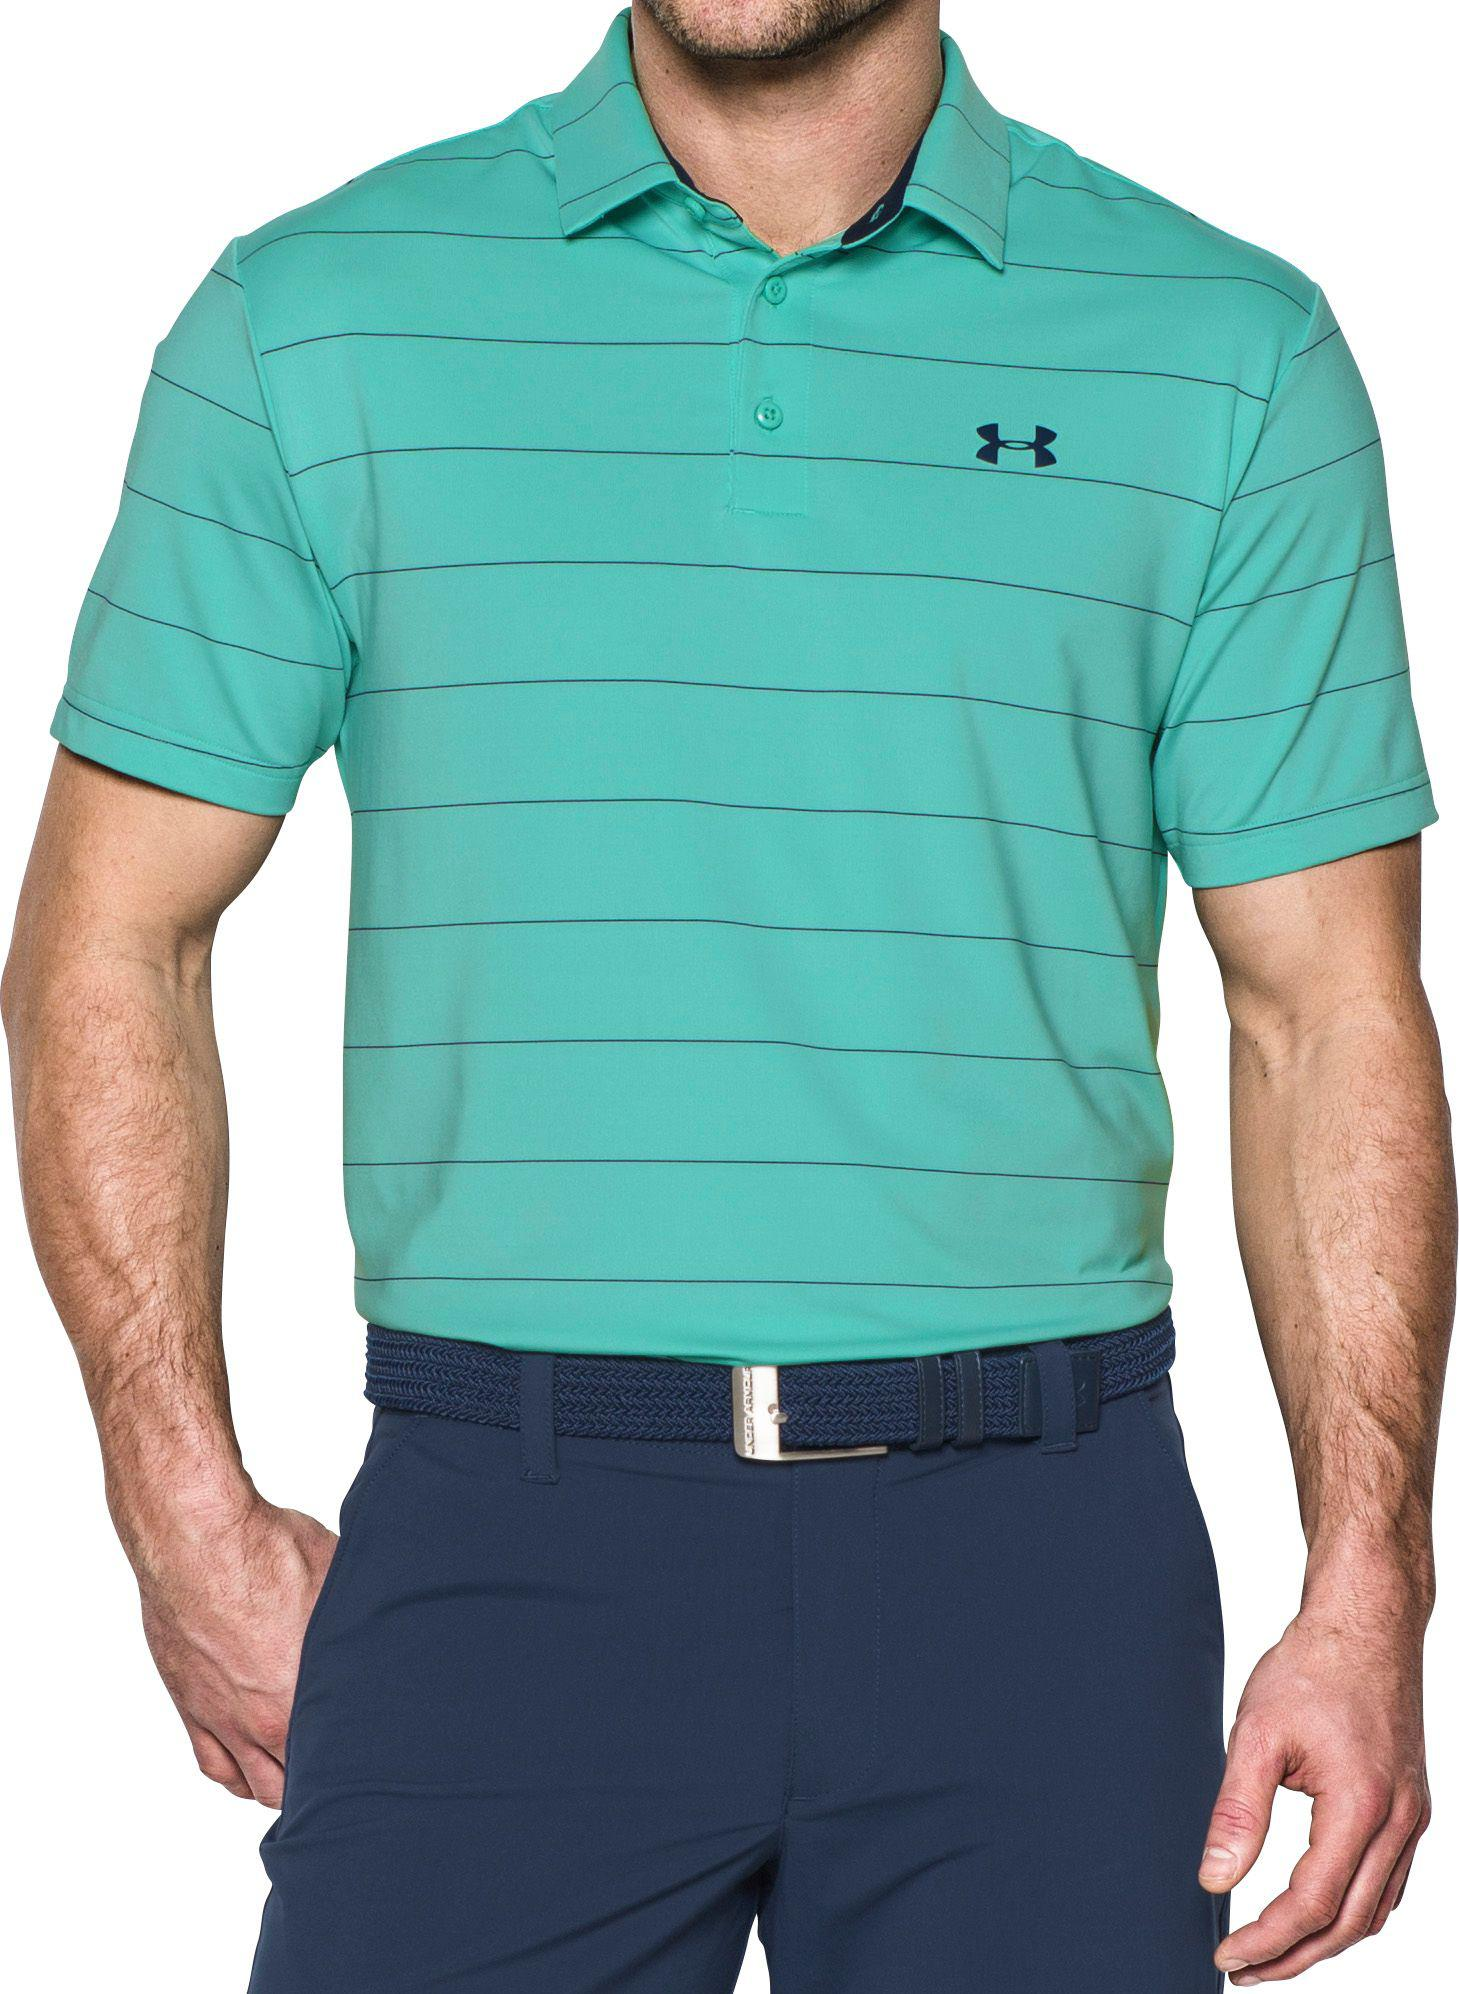 d3579c3f Under Armour Playoff Wedge Stripe Golf Polo in Green for Men - Lyst